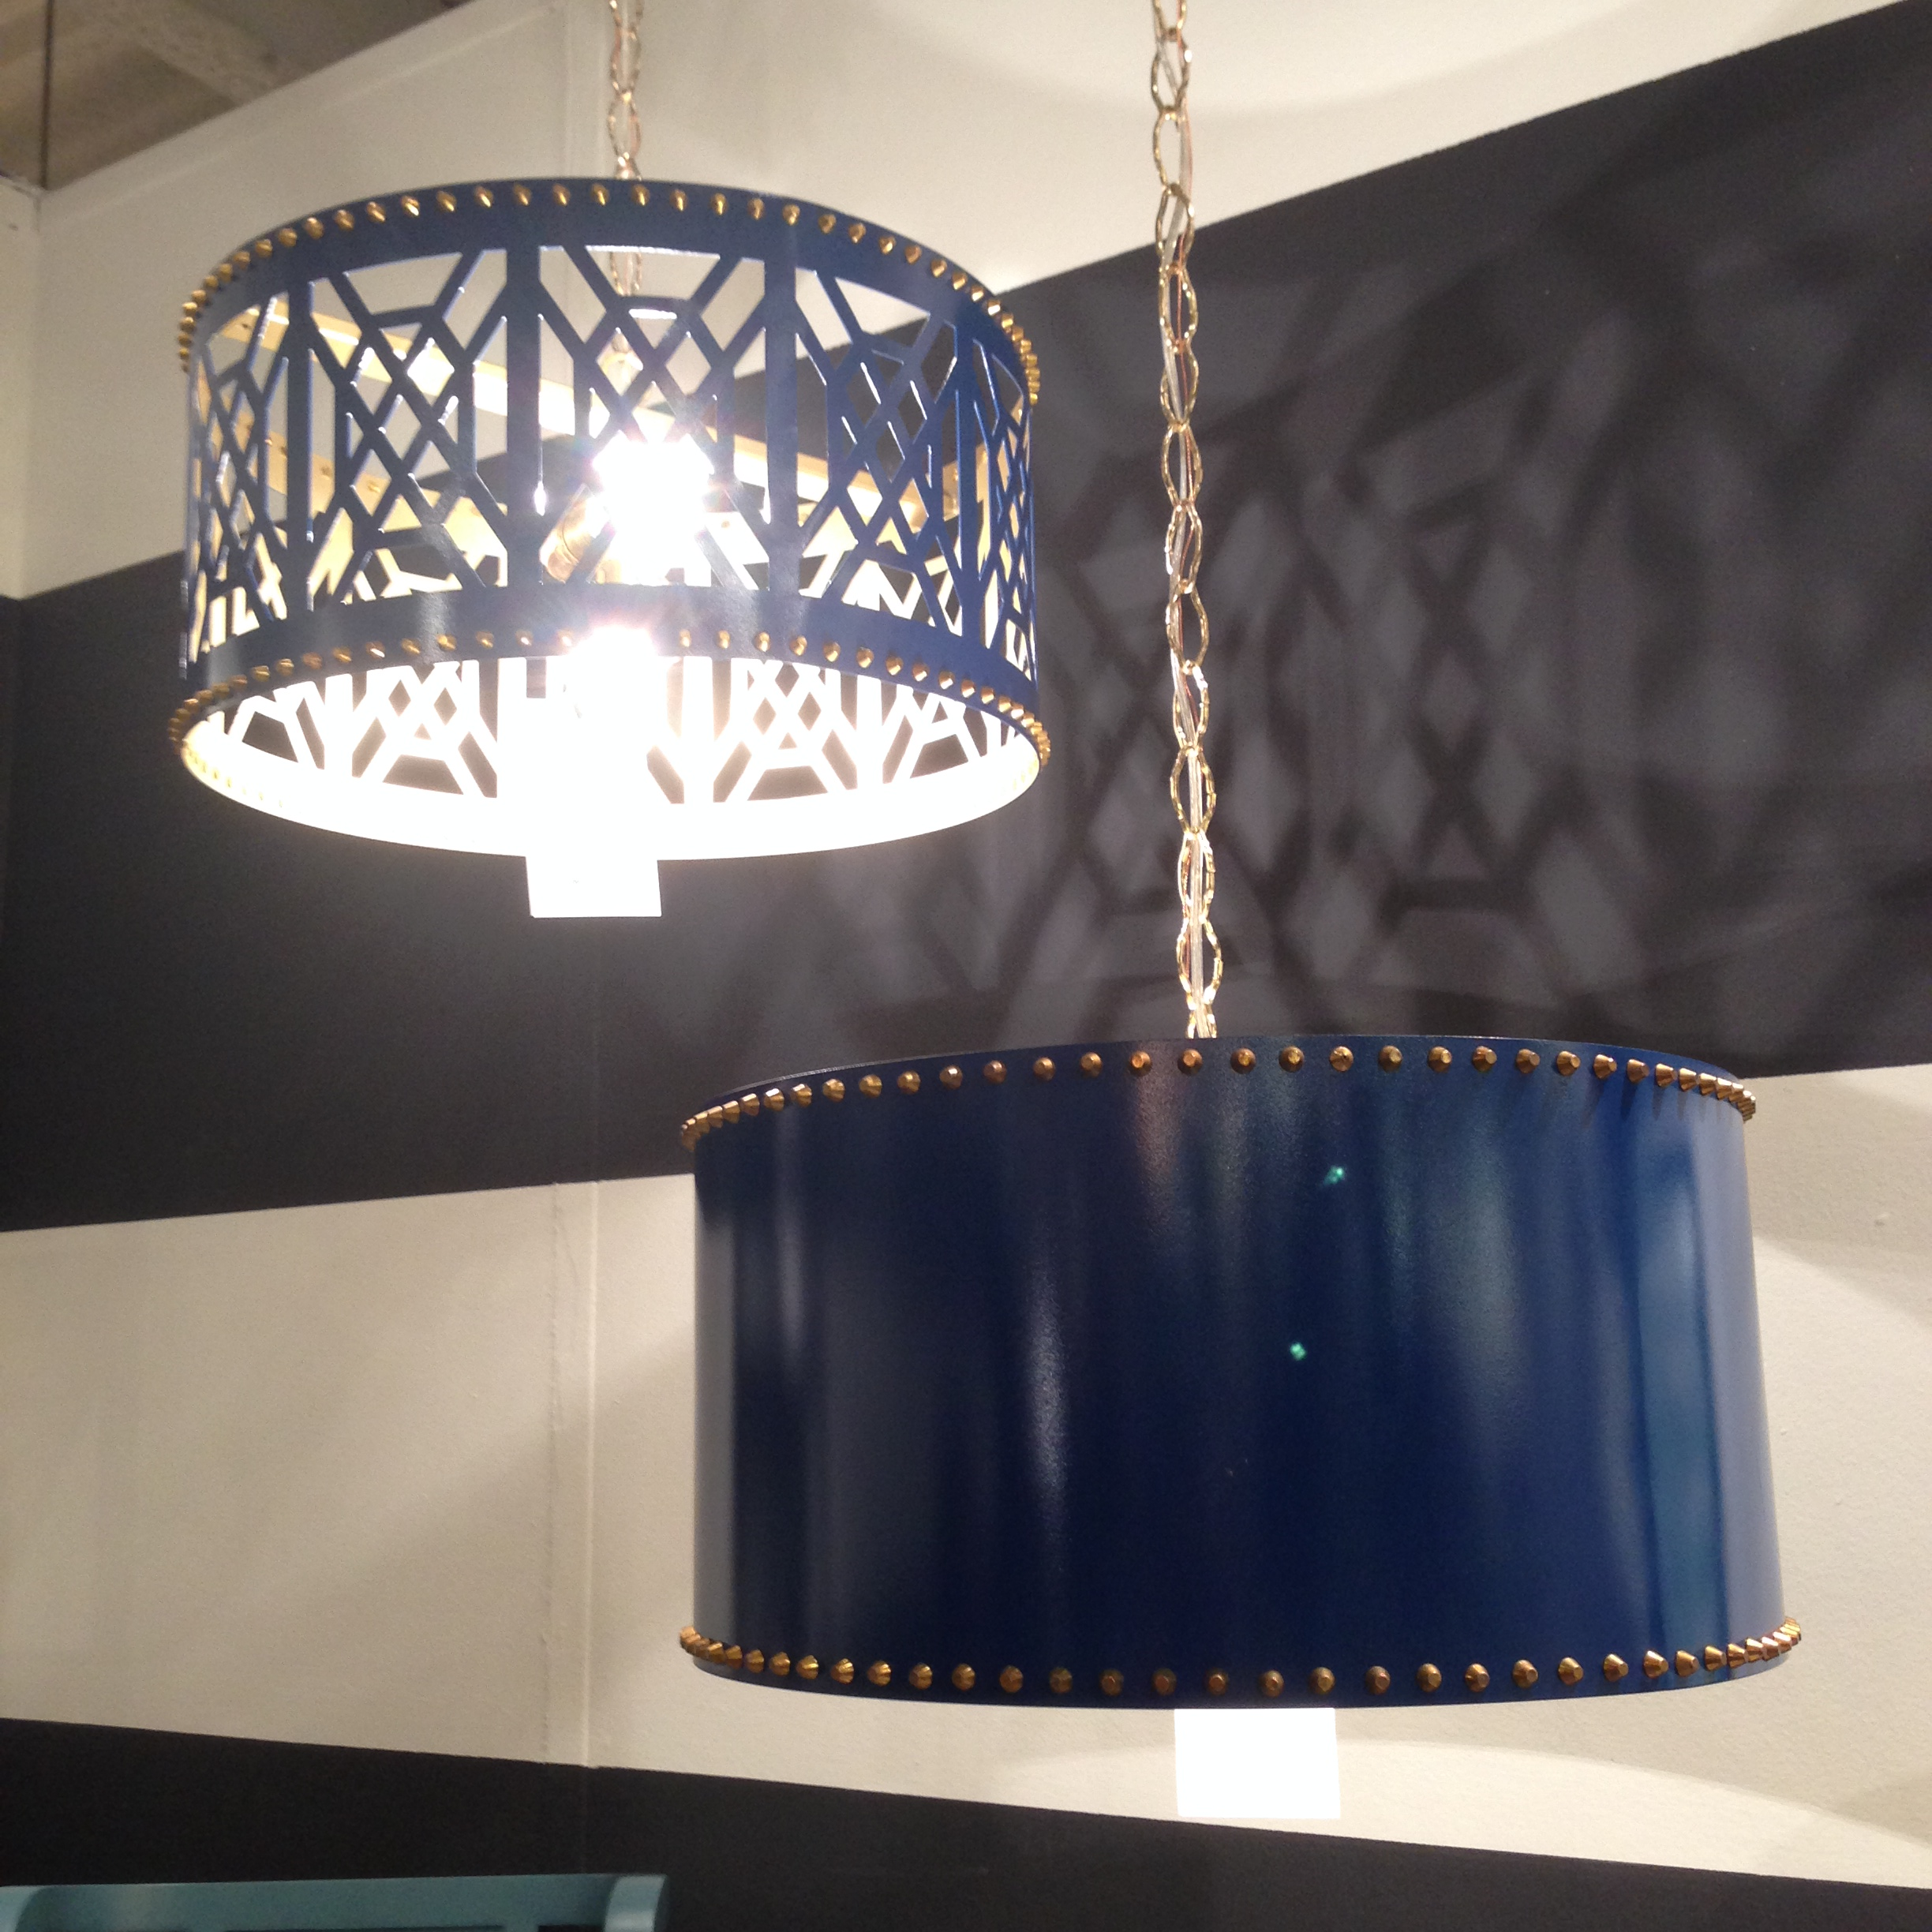 into lighting. The Lovely Ladies At Taylor Burke Home Had Many Great Market Introductions Including Their First Foray Into Lighting. 2 Pendant Styles Can Be Customized Lighting